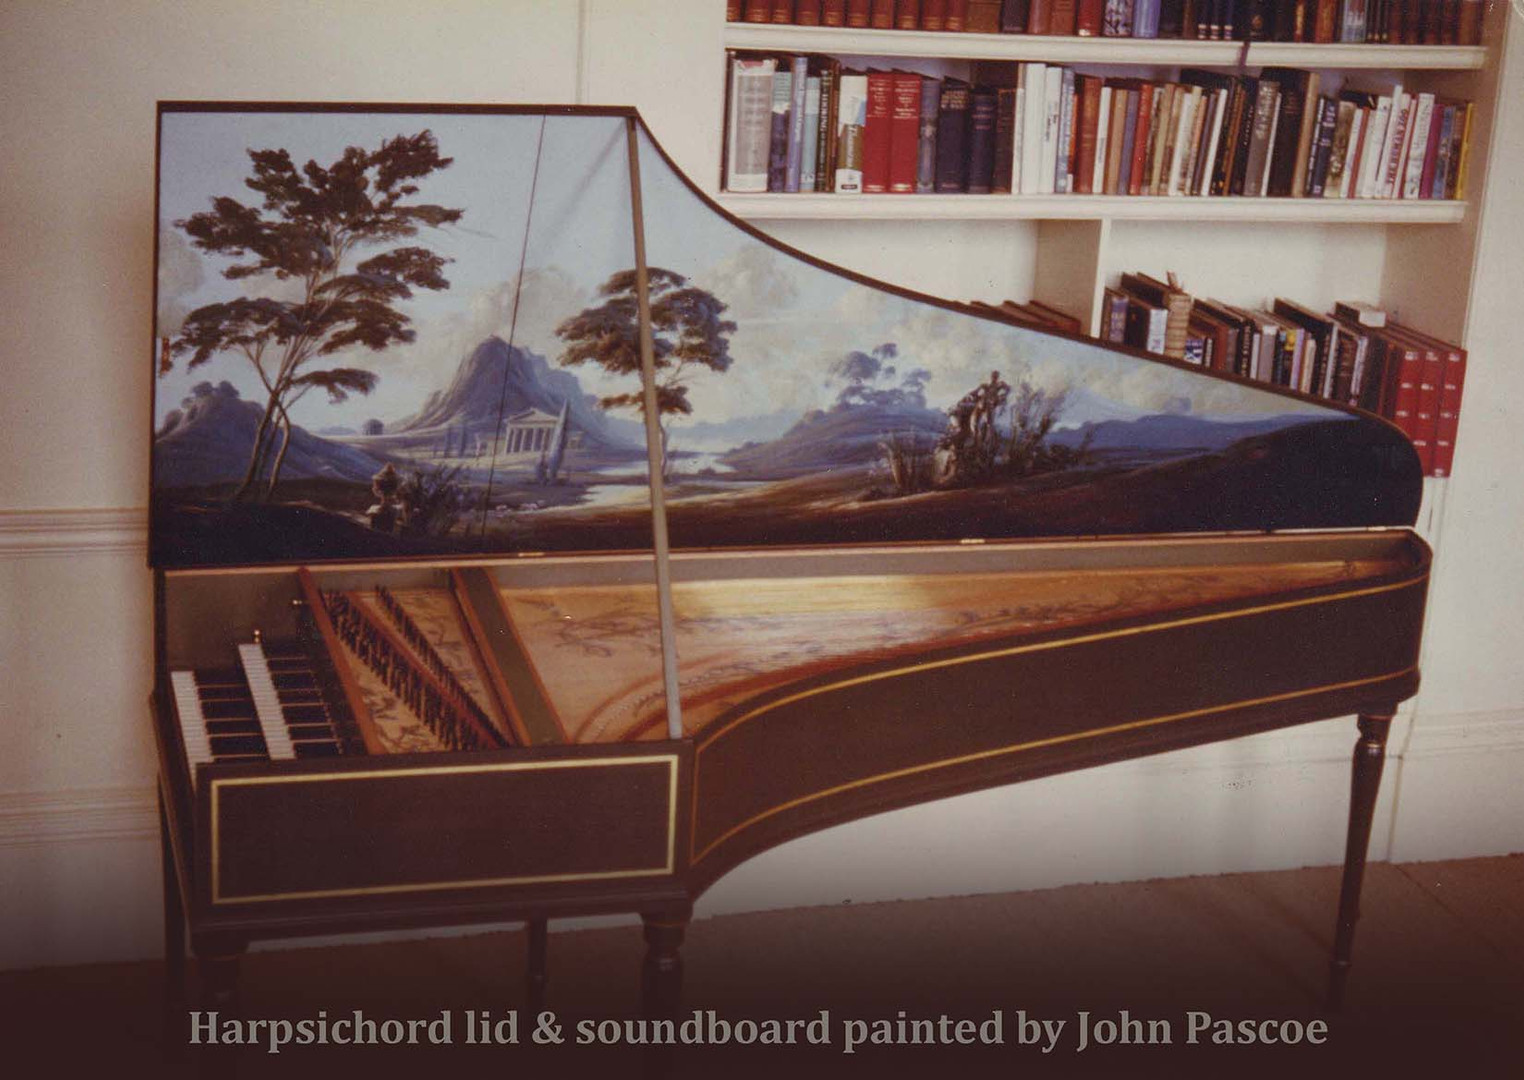 A NEO CLASSICAL VISTA.  This was another of COLIN BOOTH'S marvellous harpsichords. The vista I painted under the lid was inspired by the paintings of Nicolas Pousin.